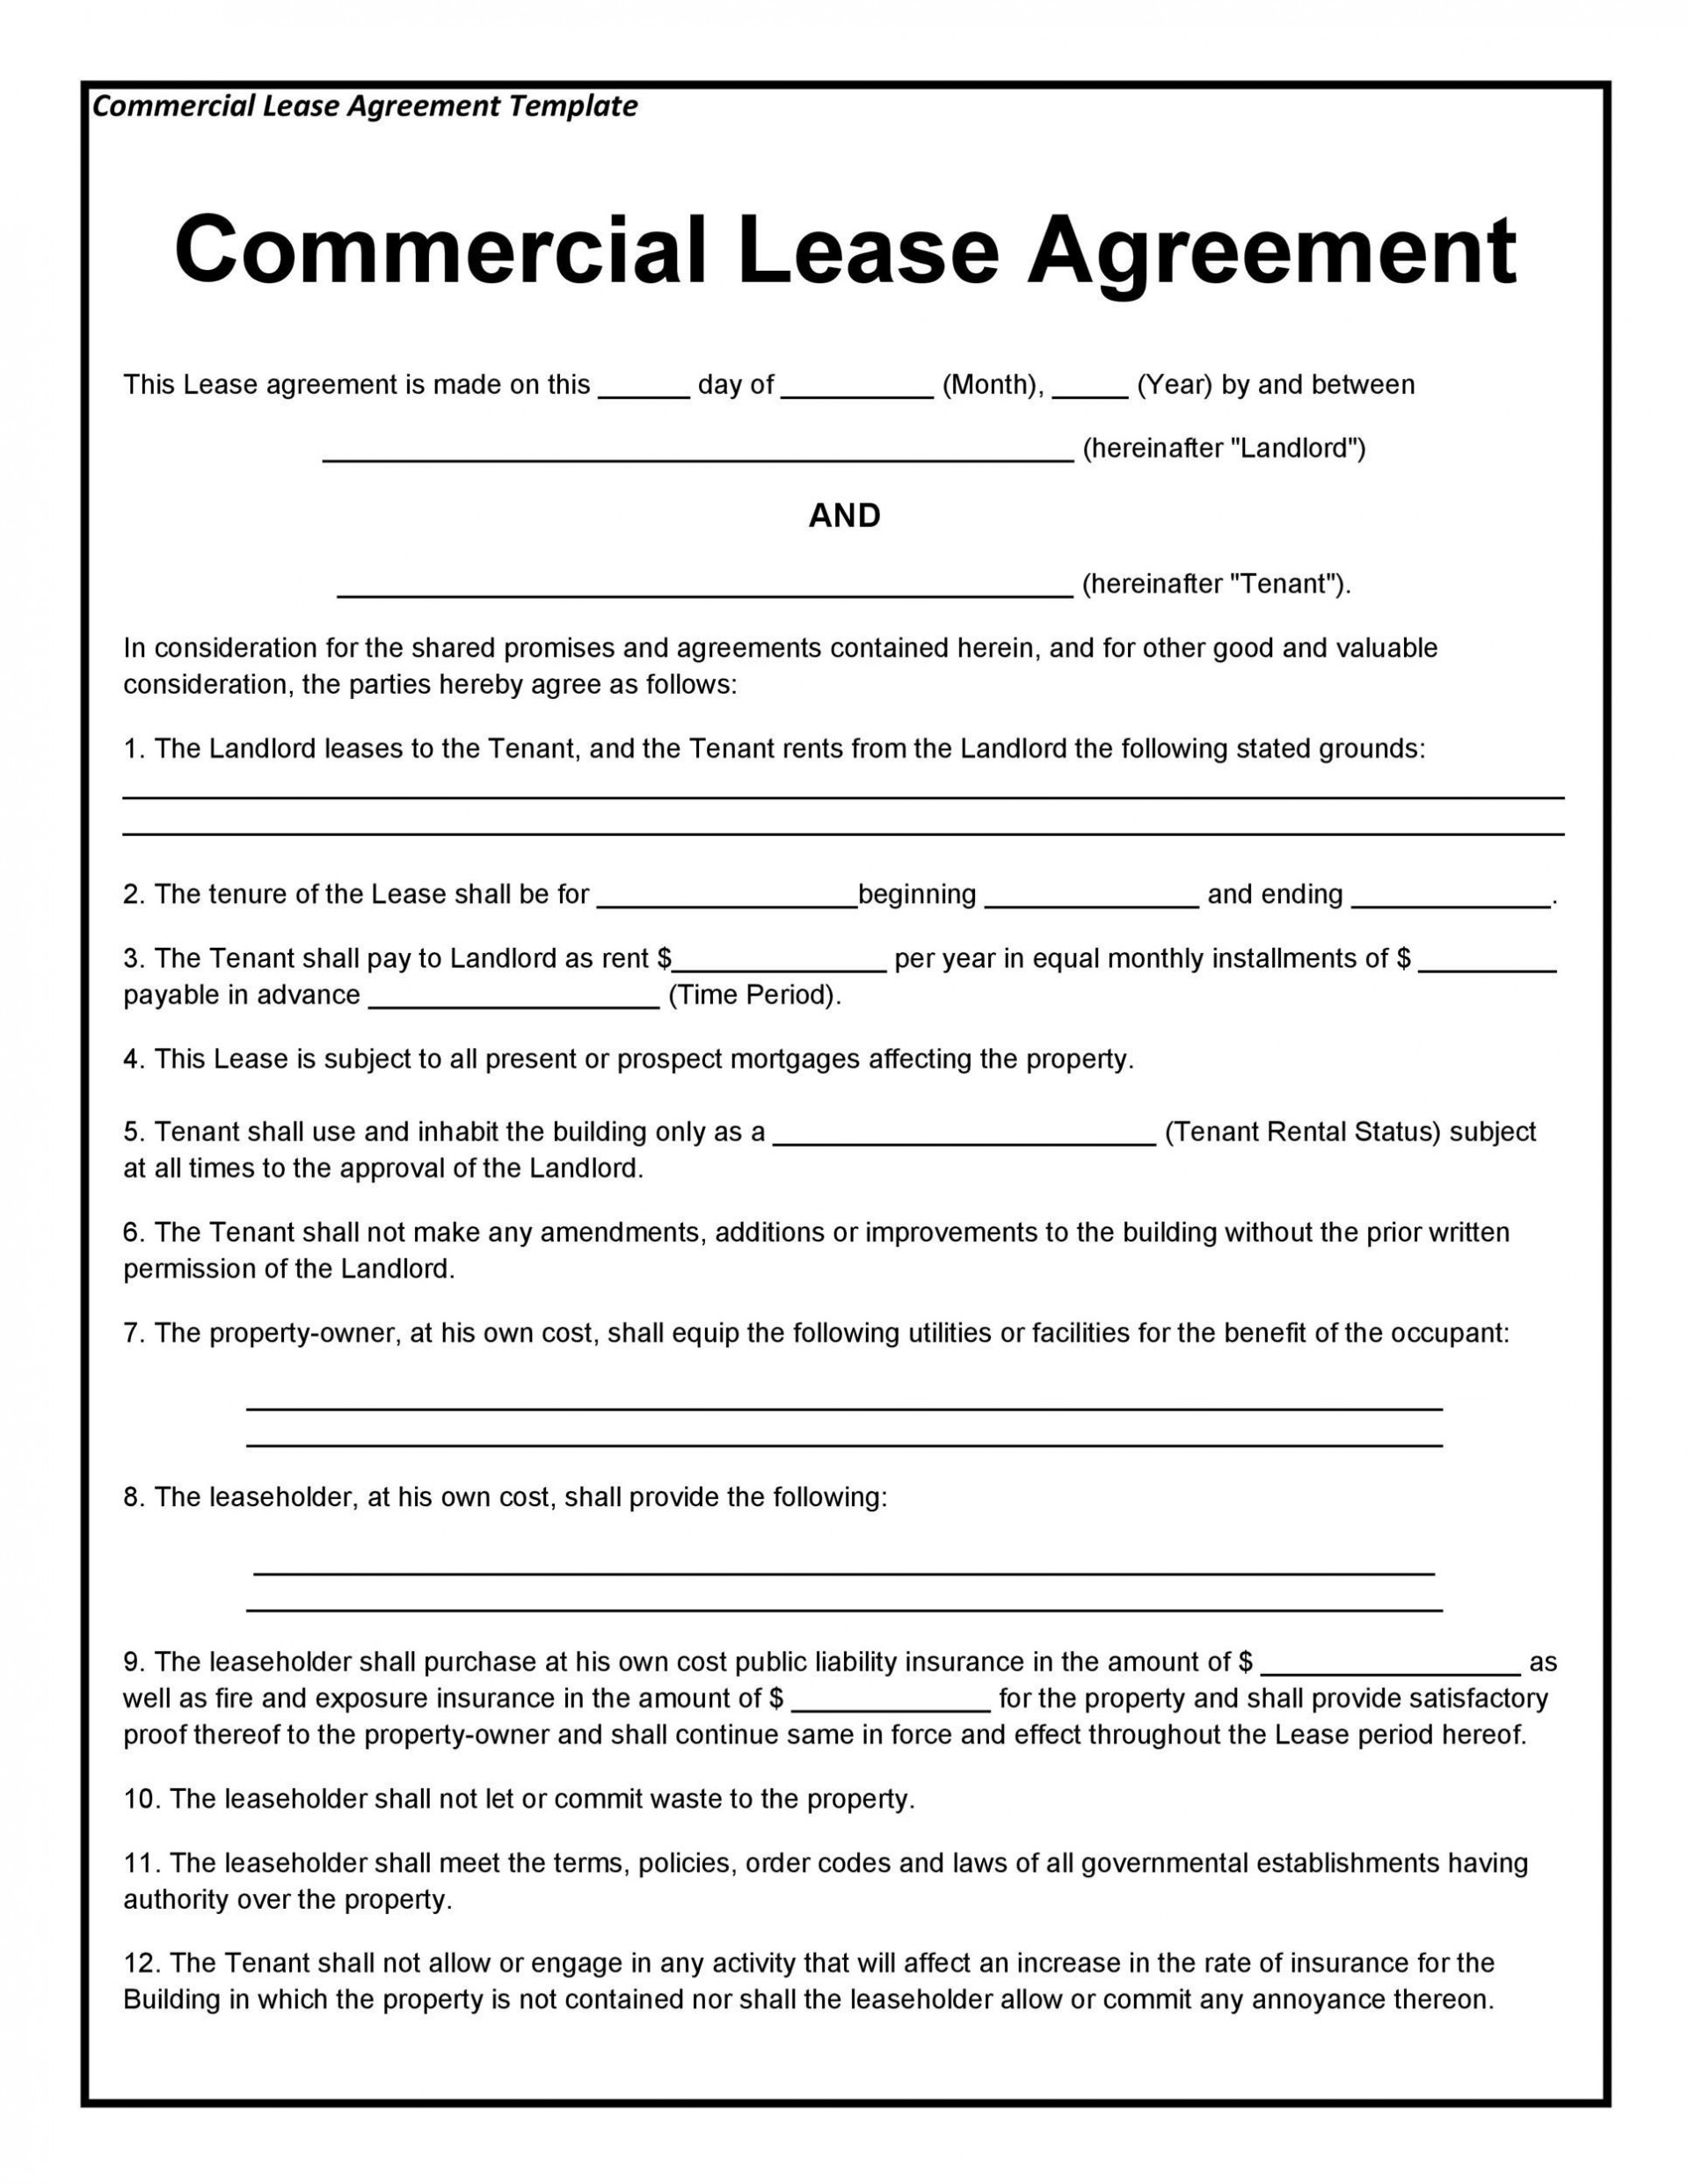 003 Remarkable Template For Home Rental Agreement Photo  House Rent1920